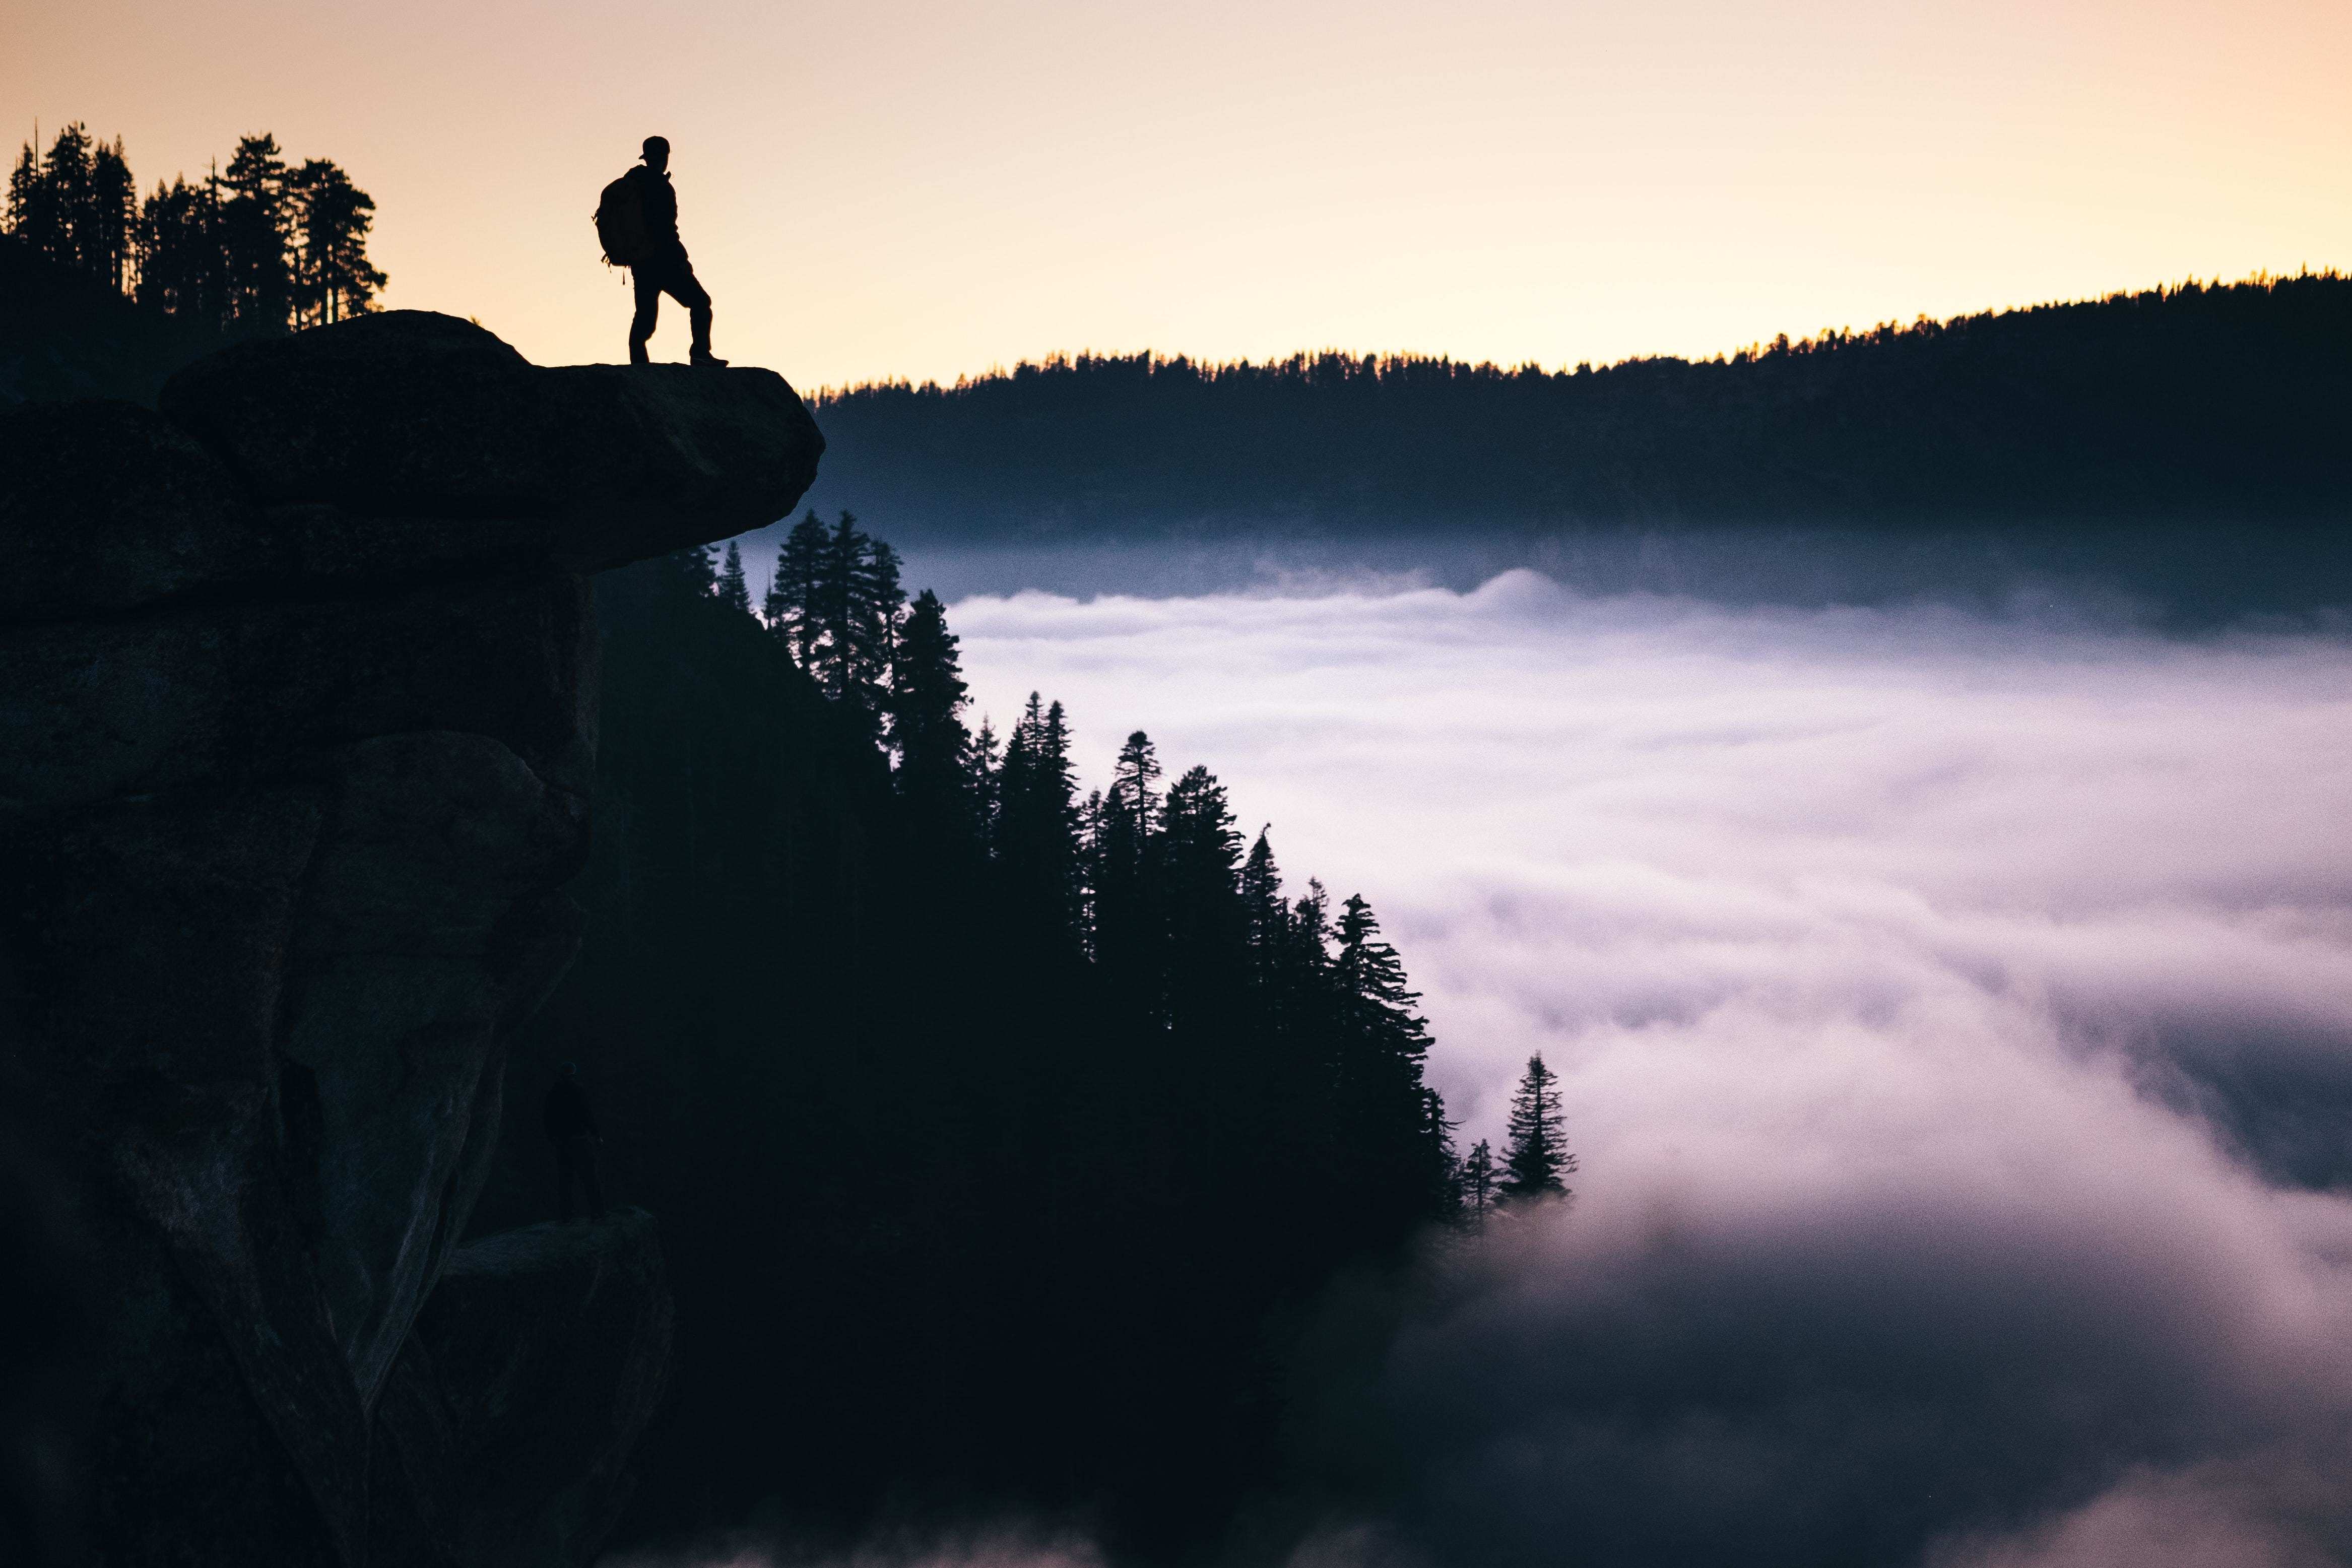 Person on cliff, forest, mist, sunset; tipping points for sustainable investment